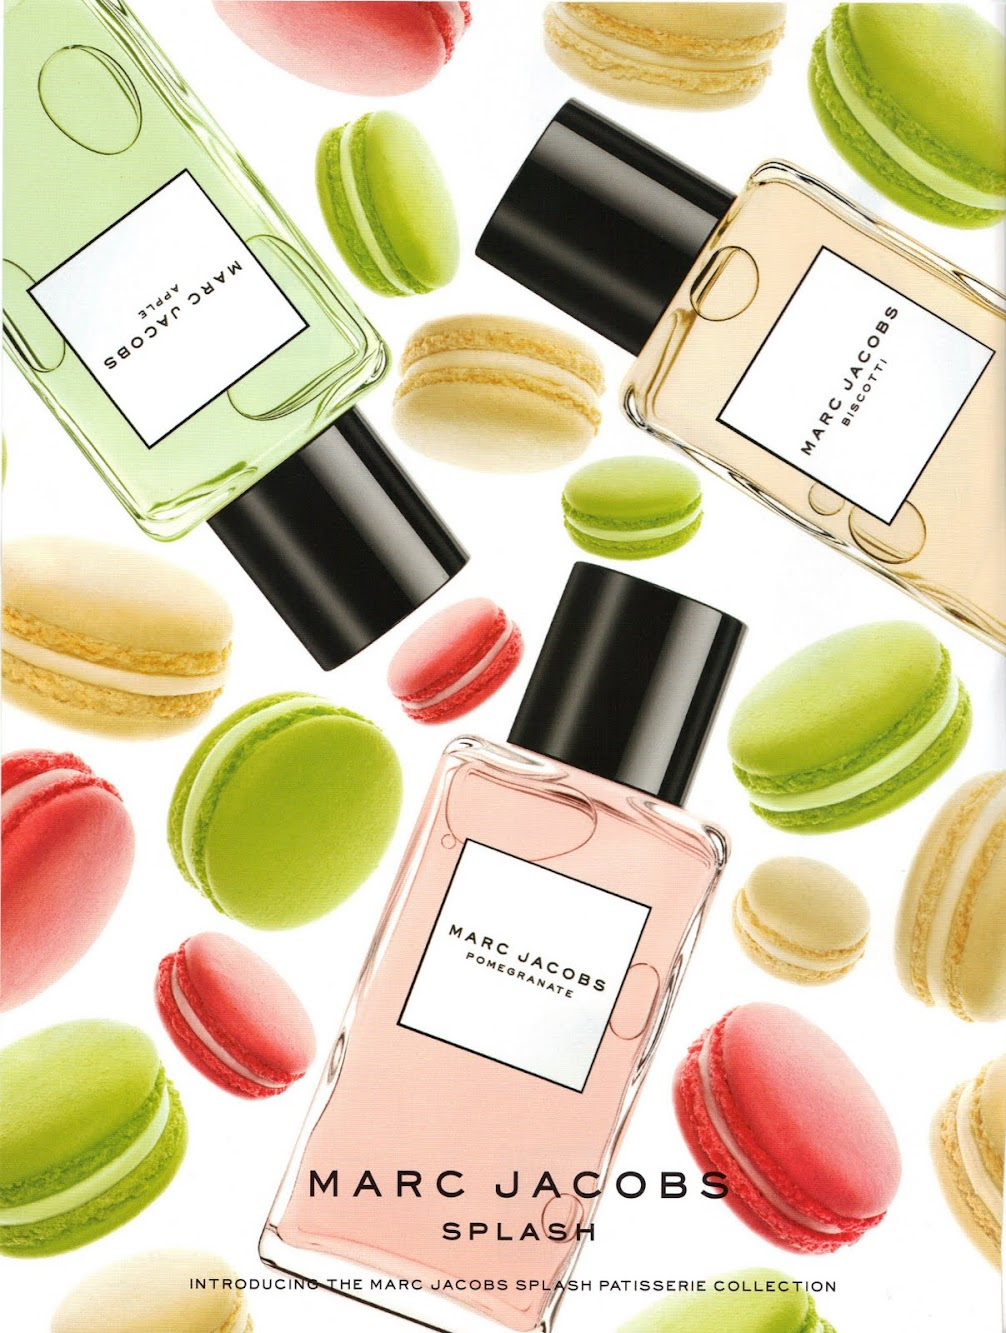 Marc Jacobs Splash Patisserie Collection